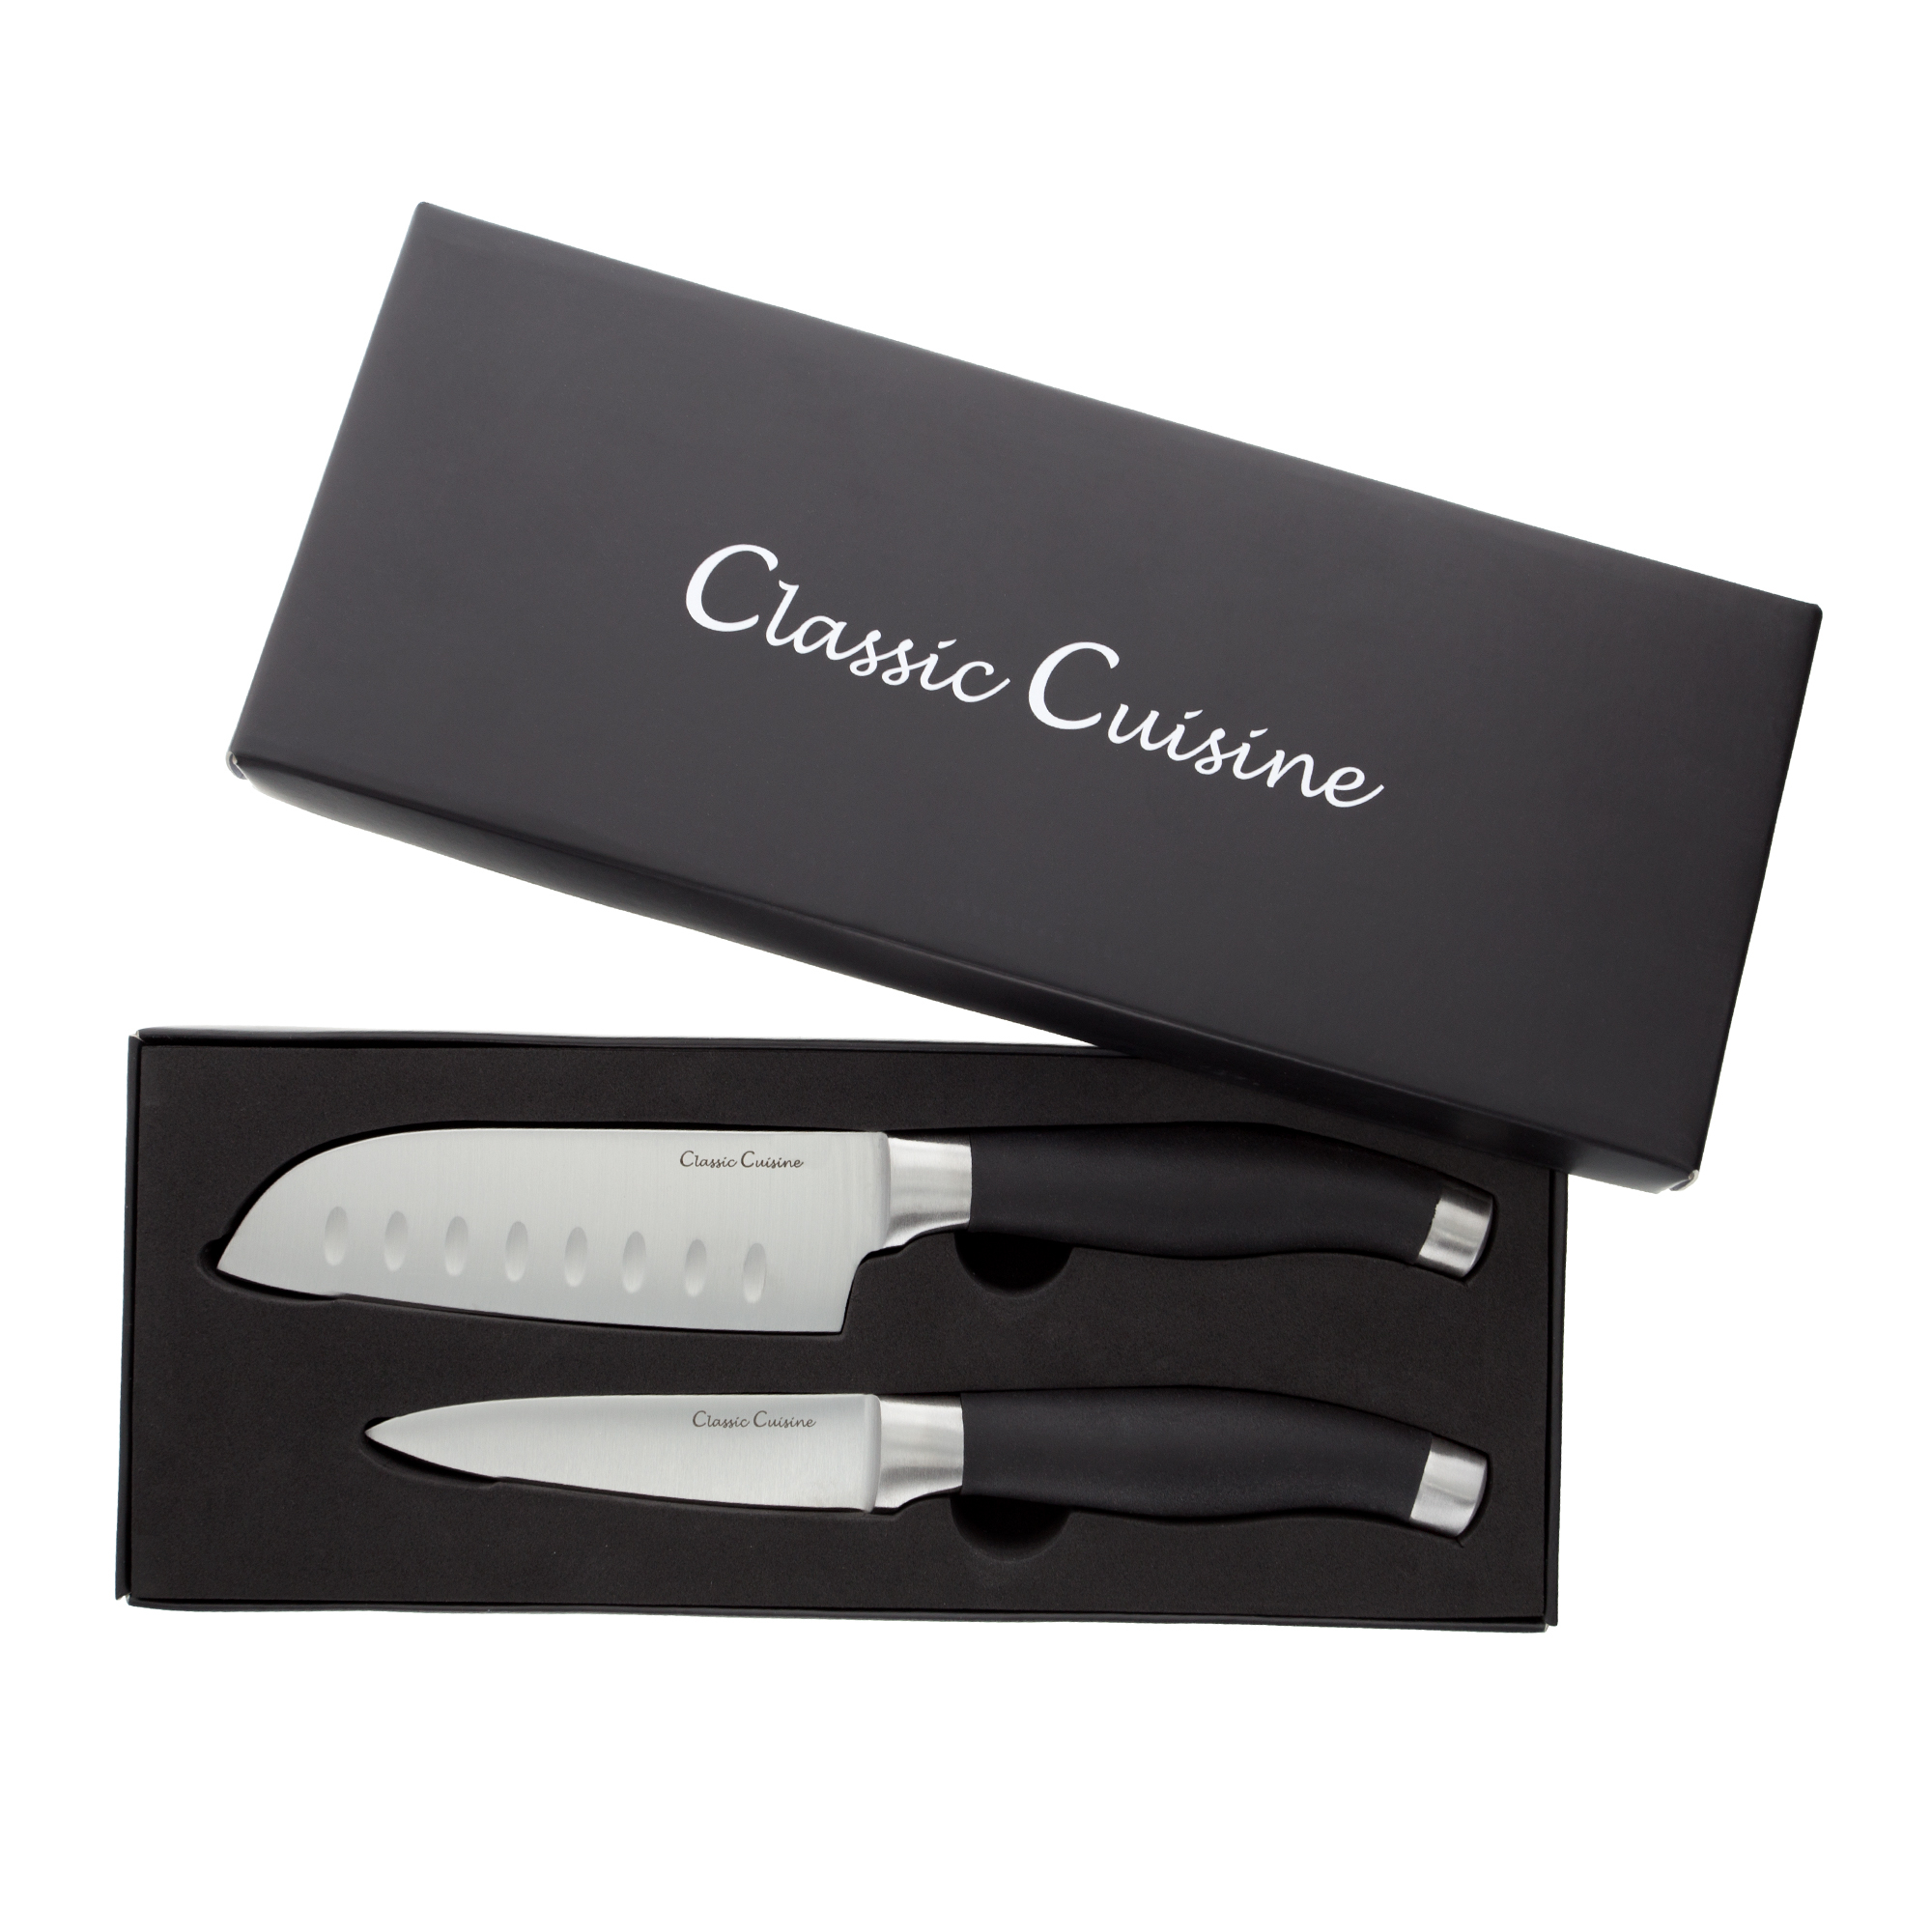 Professional Quality 2 Piece Stainless Steel Hand Forged Knife Set- 5� Santoku Knife, 4� Paring Knife for Home and Restaurant